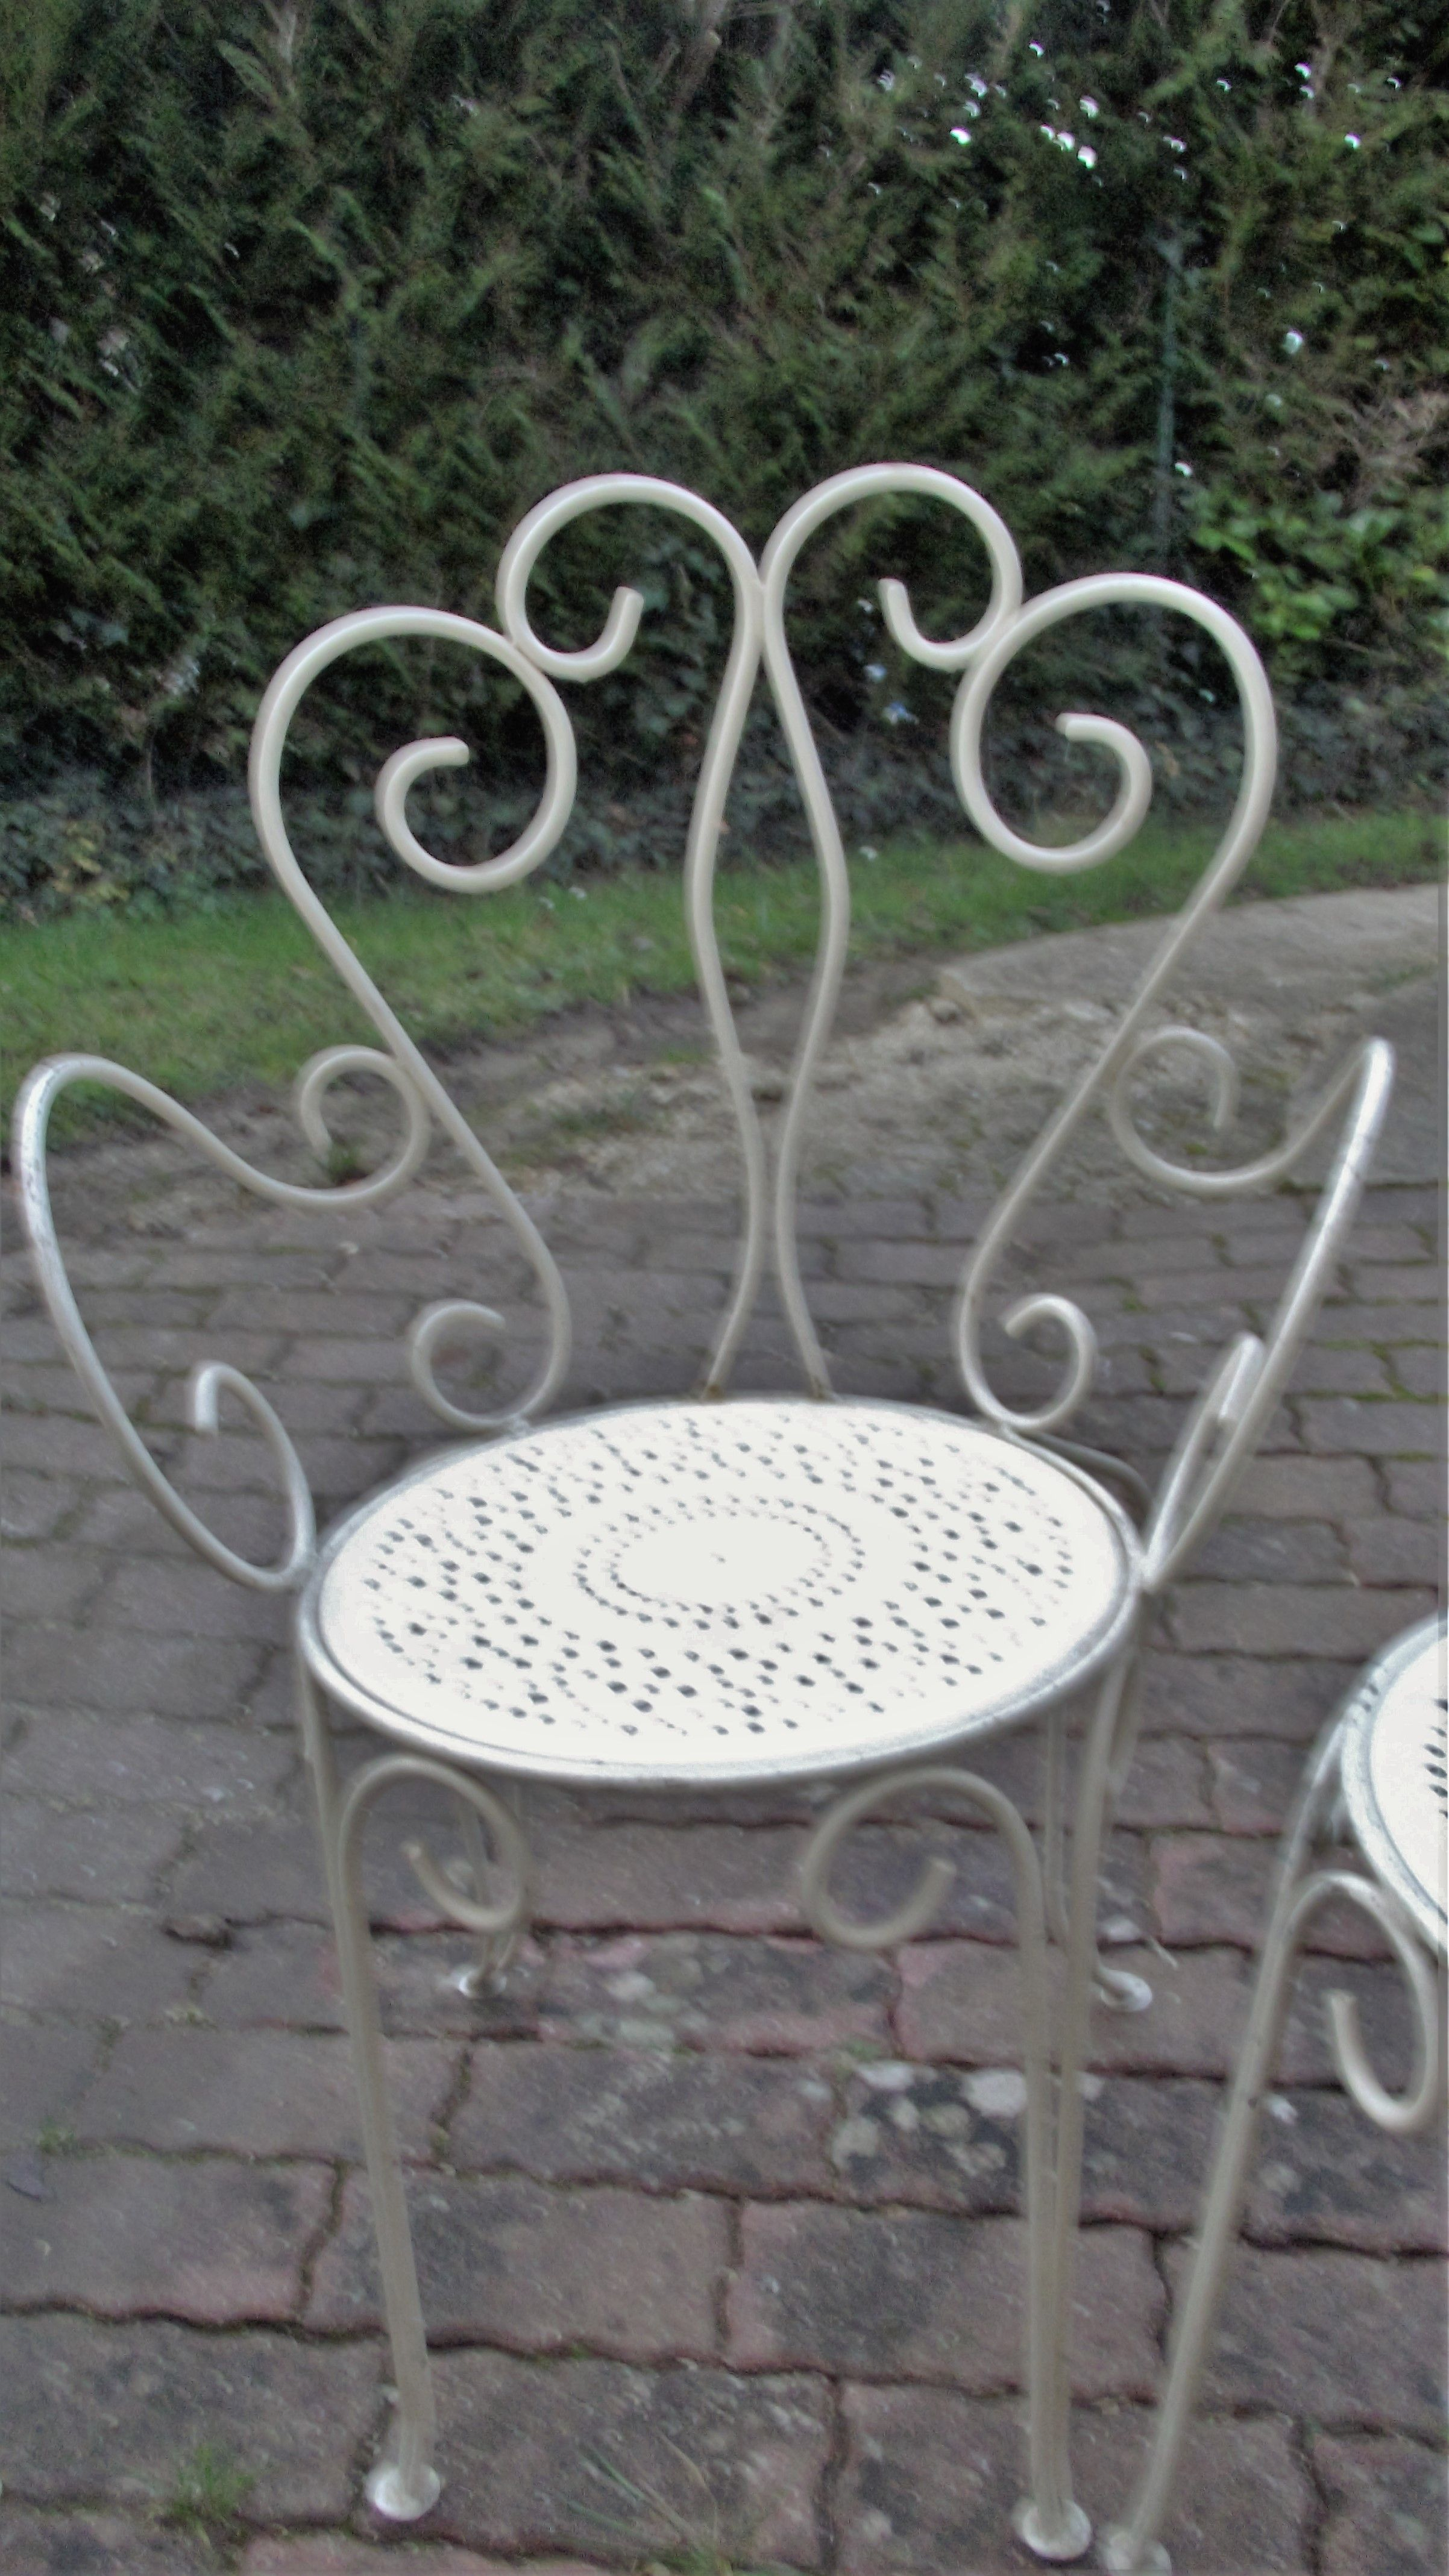 chaise fer forg ancienne janv 2016 - Chaise Fer Forge